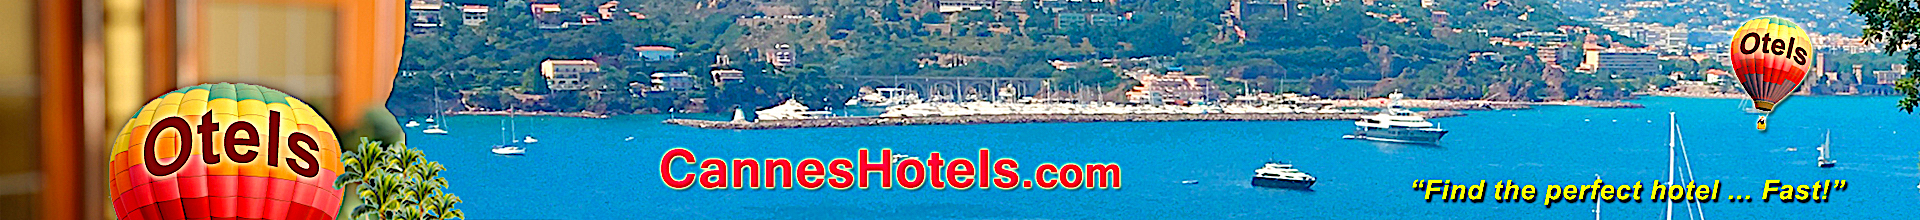 Cannes Hotels and Tourism Tips